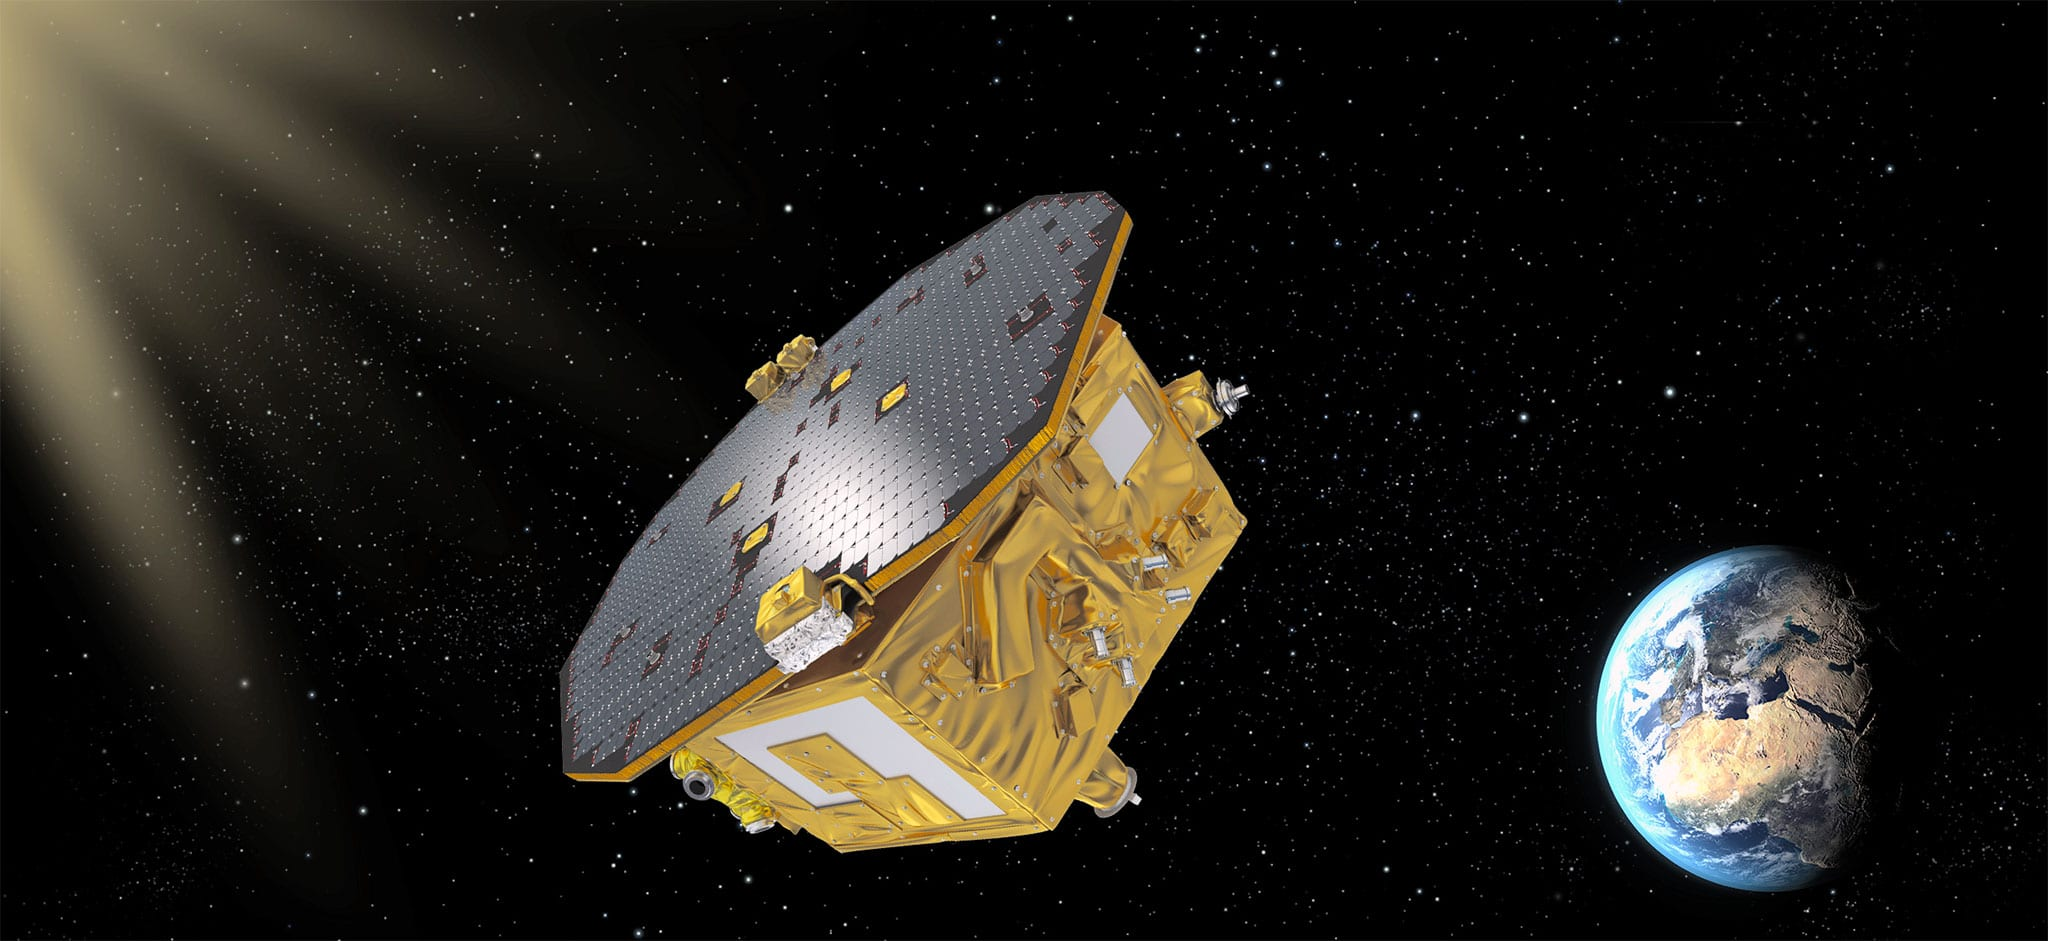 The Lisa Pathfinder ESA artistic image